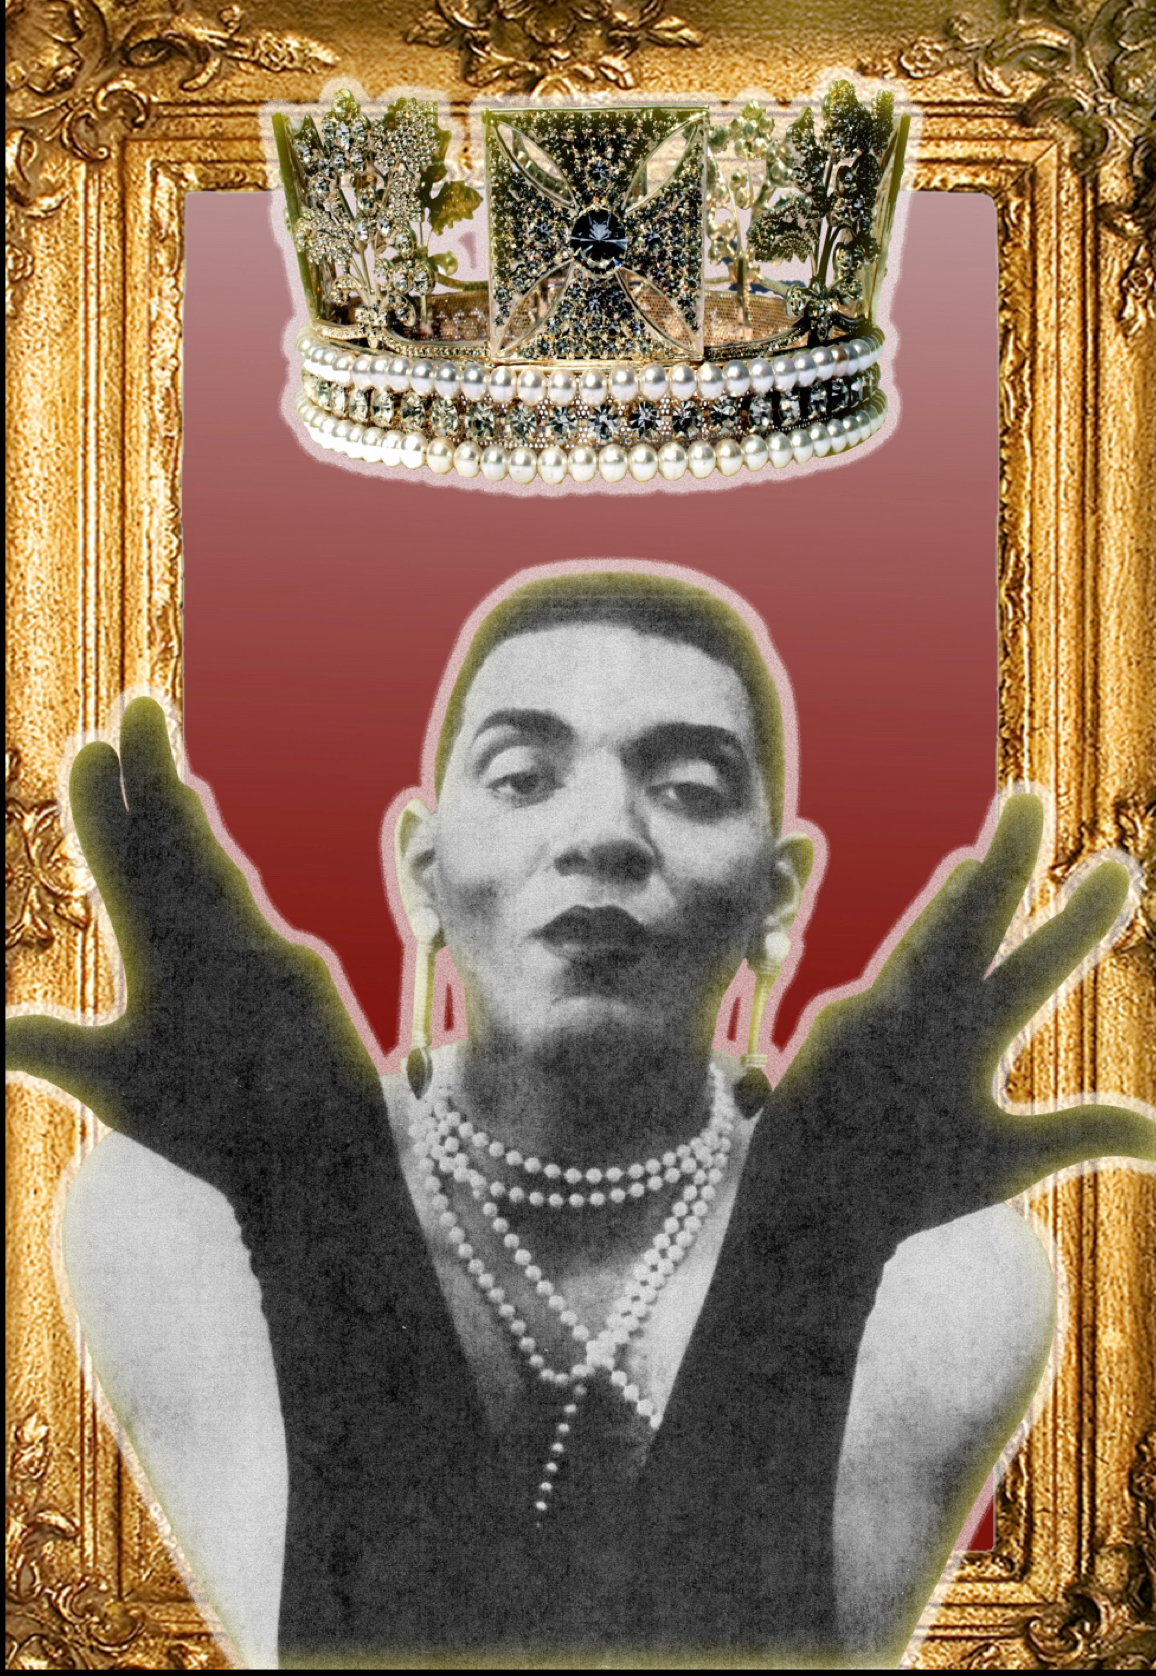 Image: A collage featuring a black and white photo of Assotto Saint wearing pearls, earrings, and black gloves with his hands in the air. The photo is set on a maroon background with a gold frame. A crown floats above Assotto's head. Image by T'yanna Moore, courtesy of Mario LaMothe.